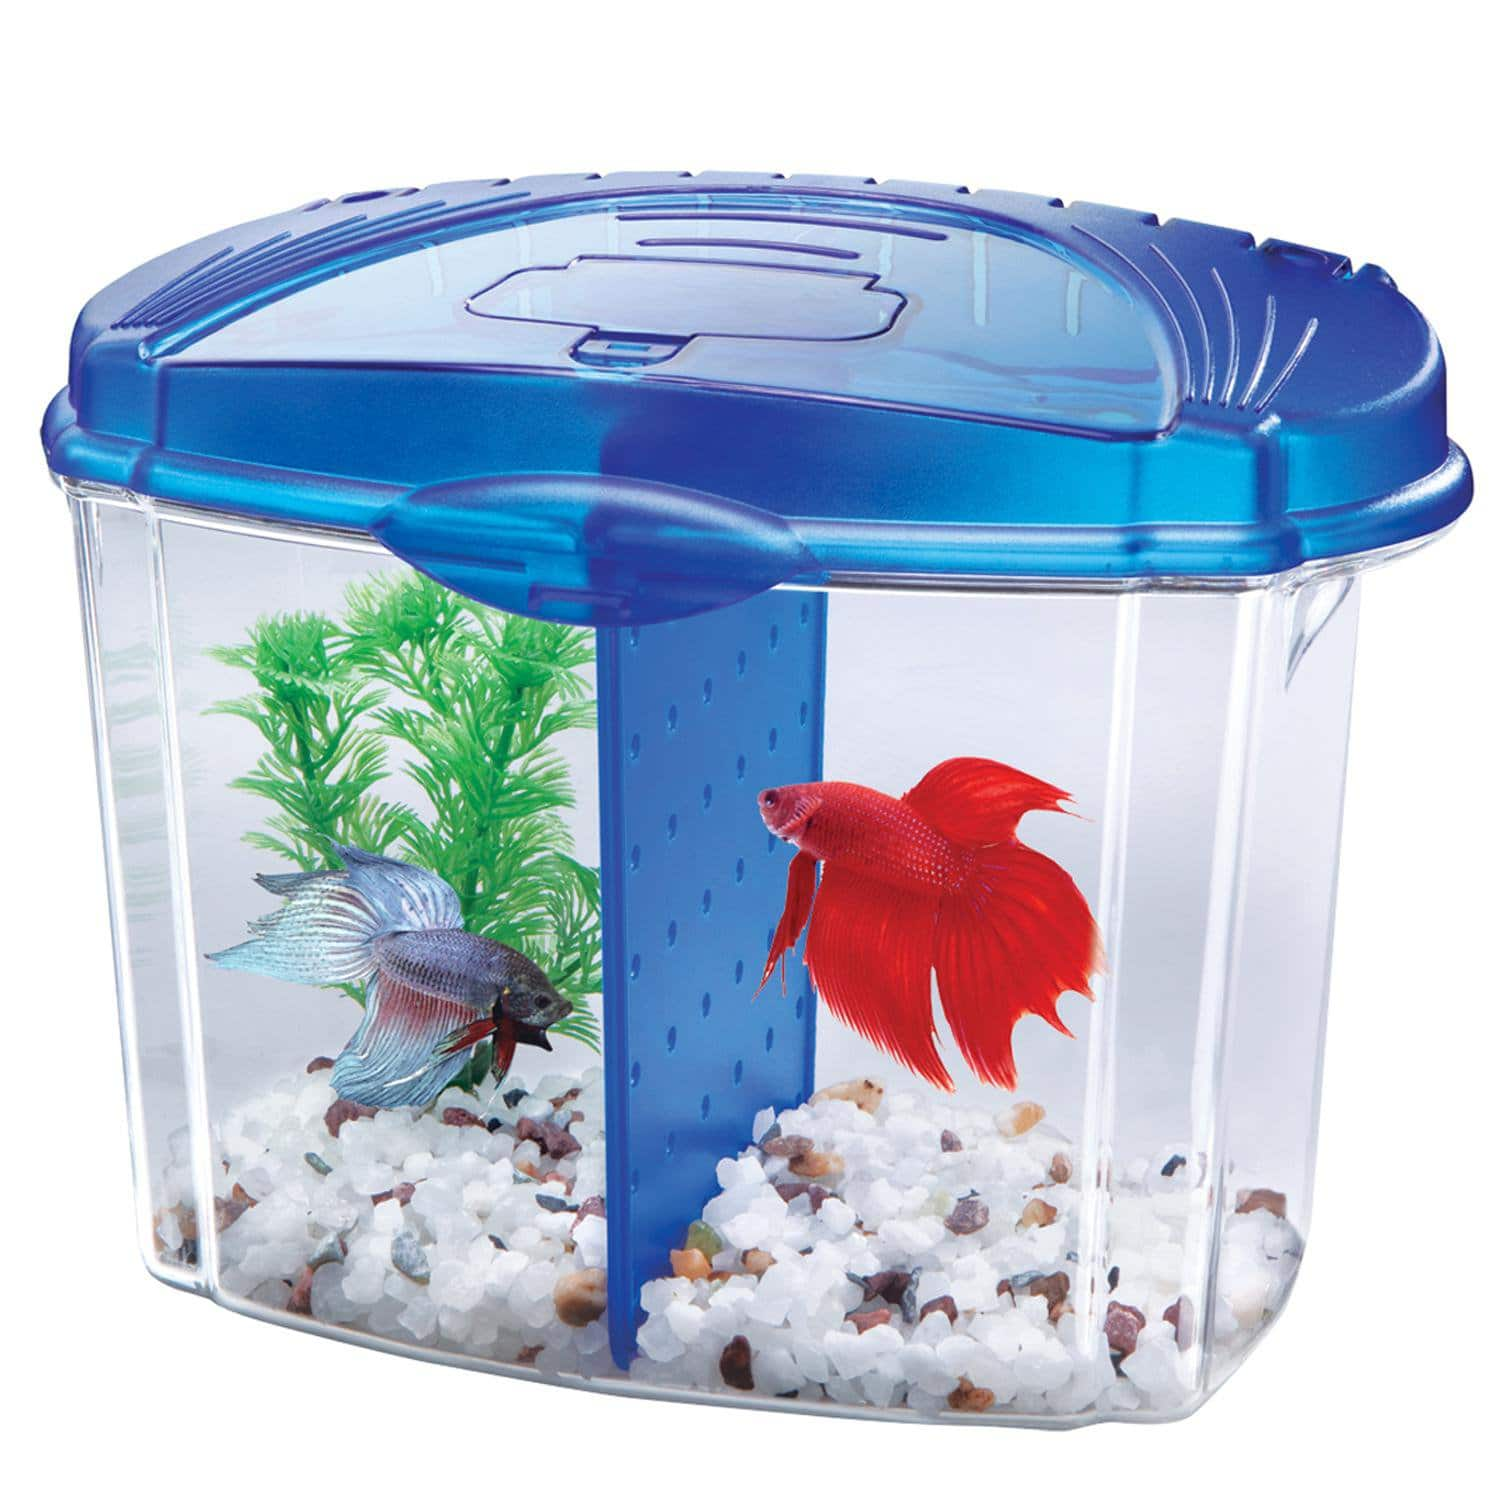 Aquarium fish tank complete system - Petco S Dollar A Gallon Aquarium Fish Tank Sale Starts Sunday